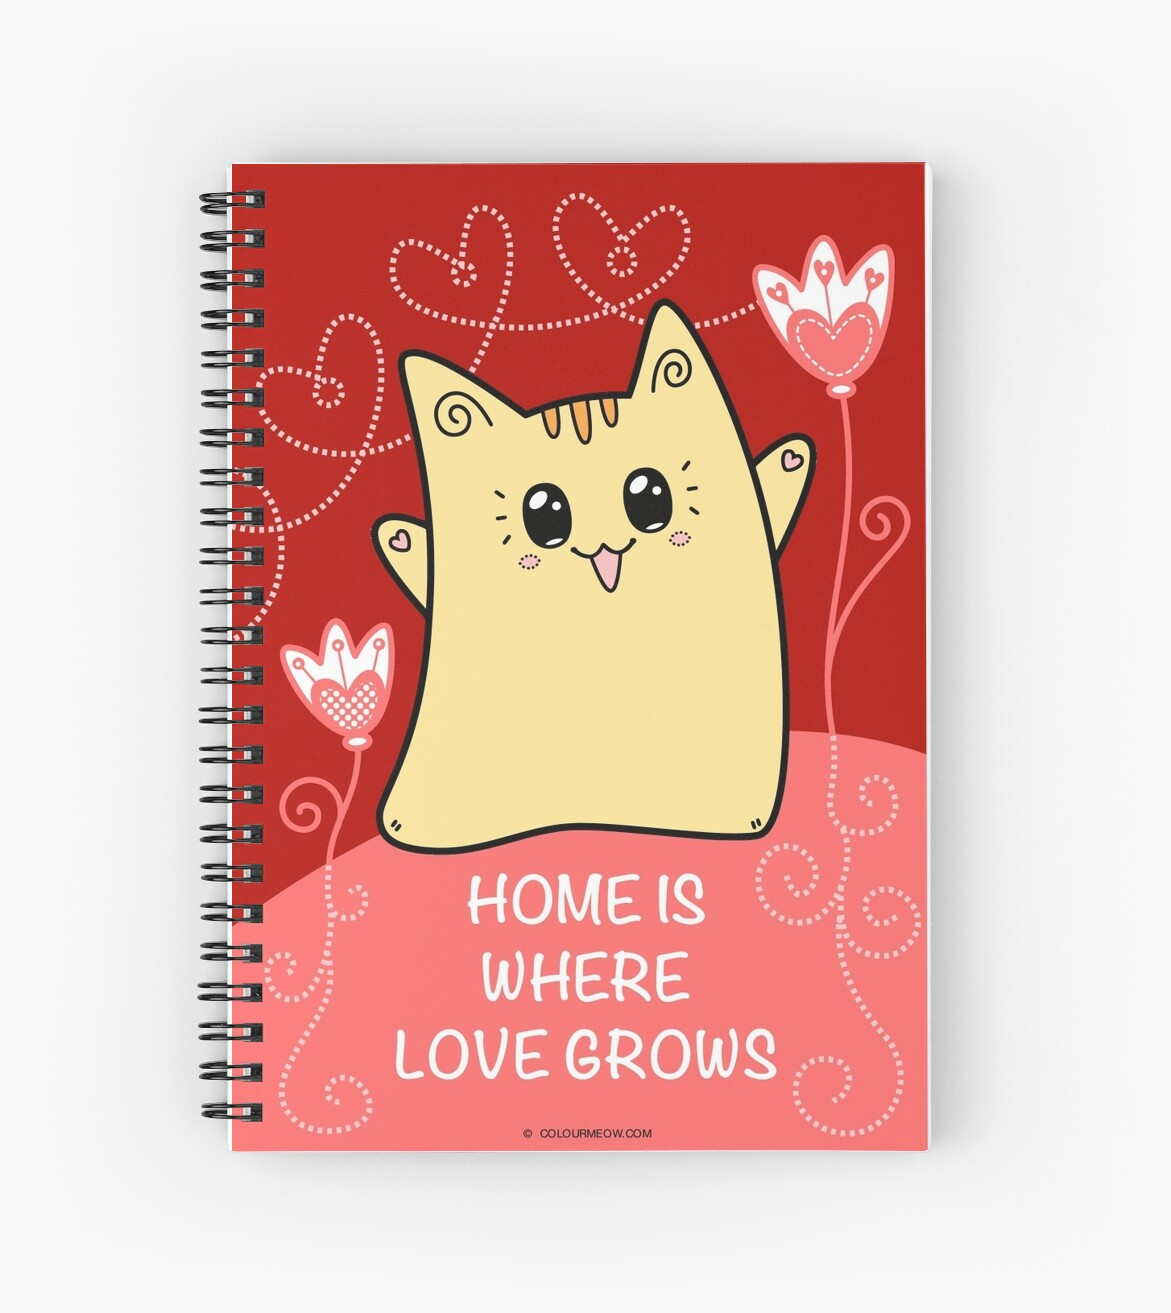 Cute Kawaii Cat Neko Yoko - Home of Love by Natalie Cat